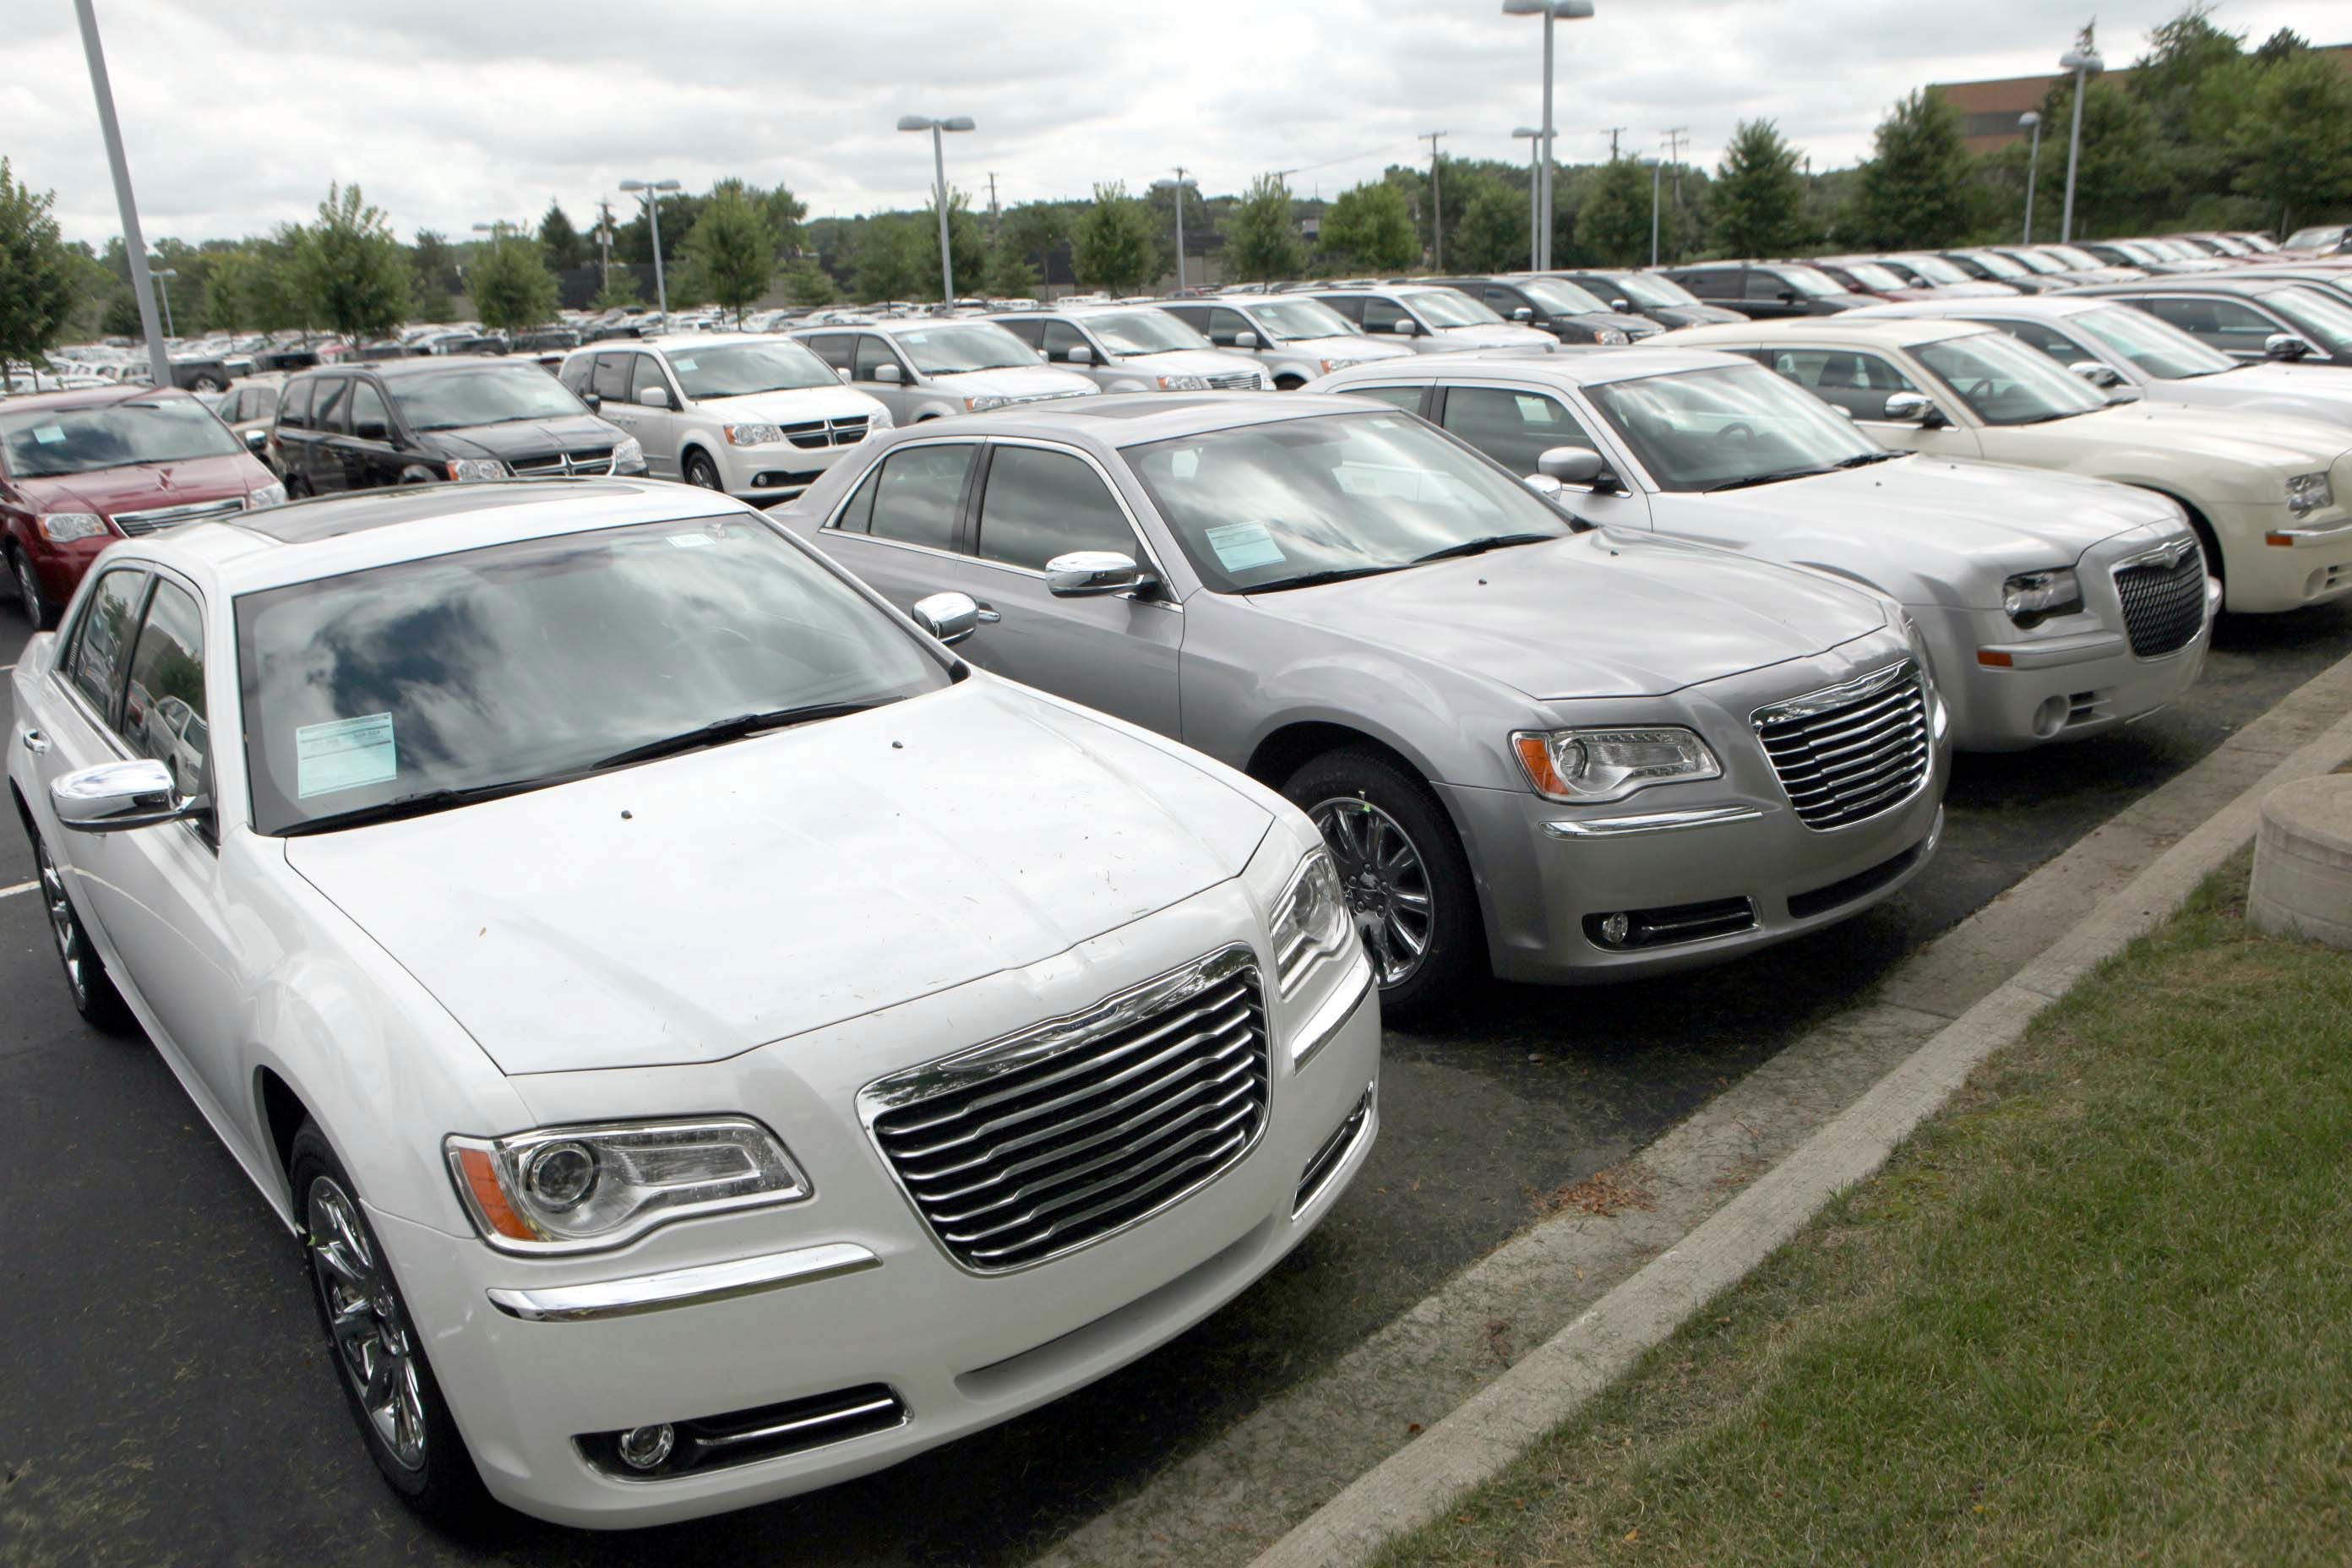 Canada Car Buying And Selling Best Site Thecanadianwheels Visit